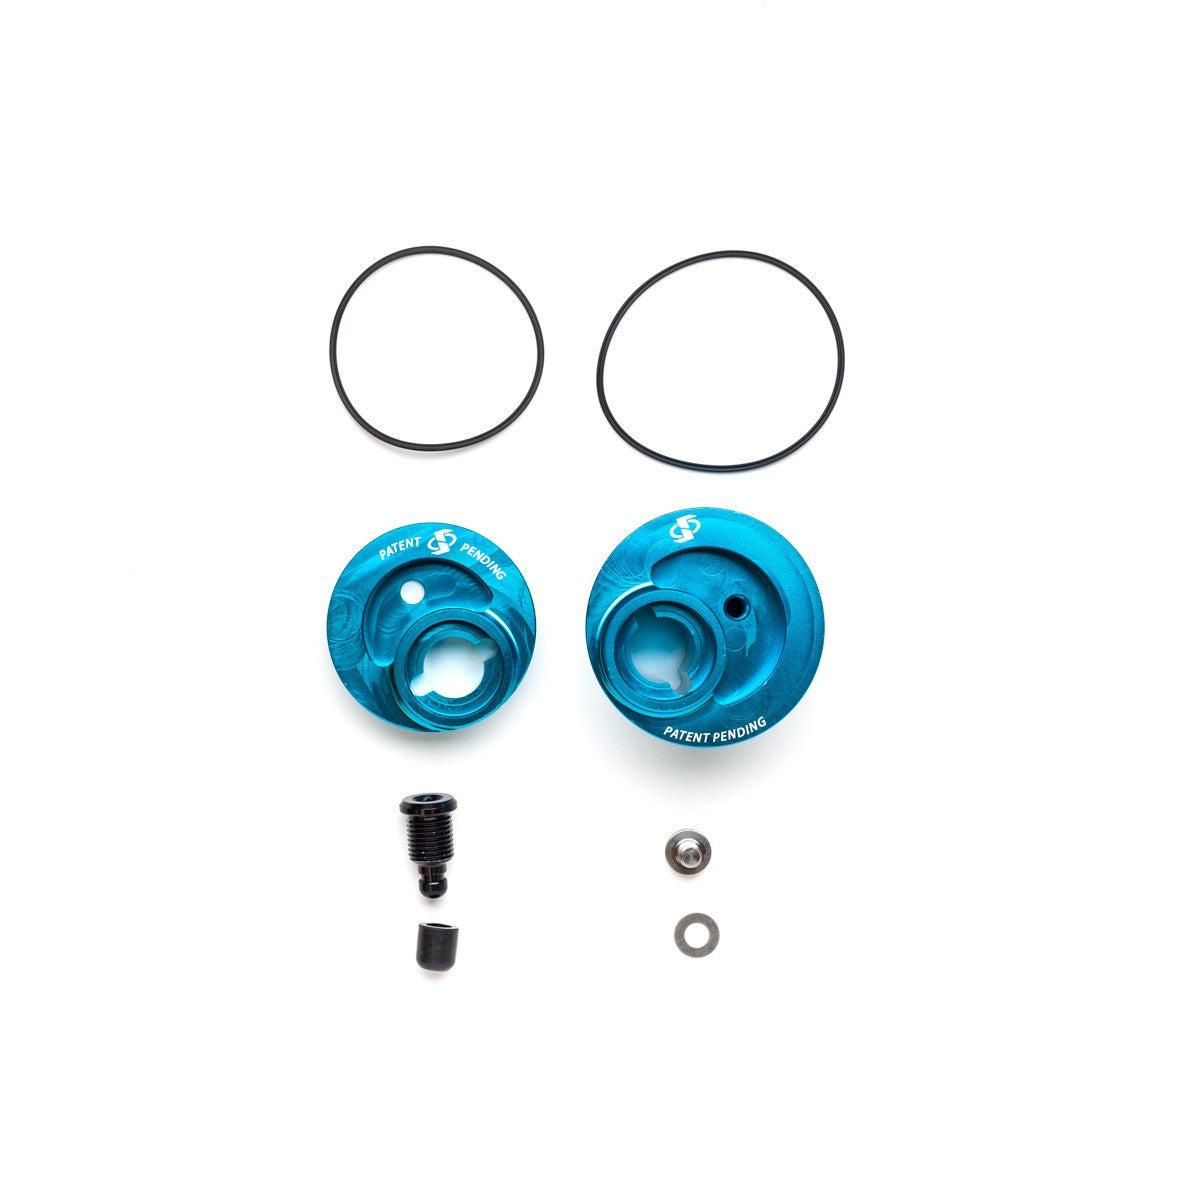 Yeti Parts - SB-66 Alloy Eccentric Kit